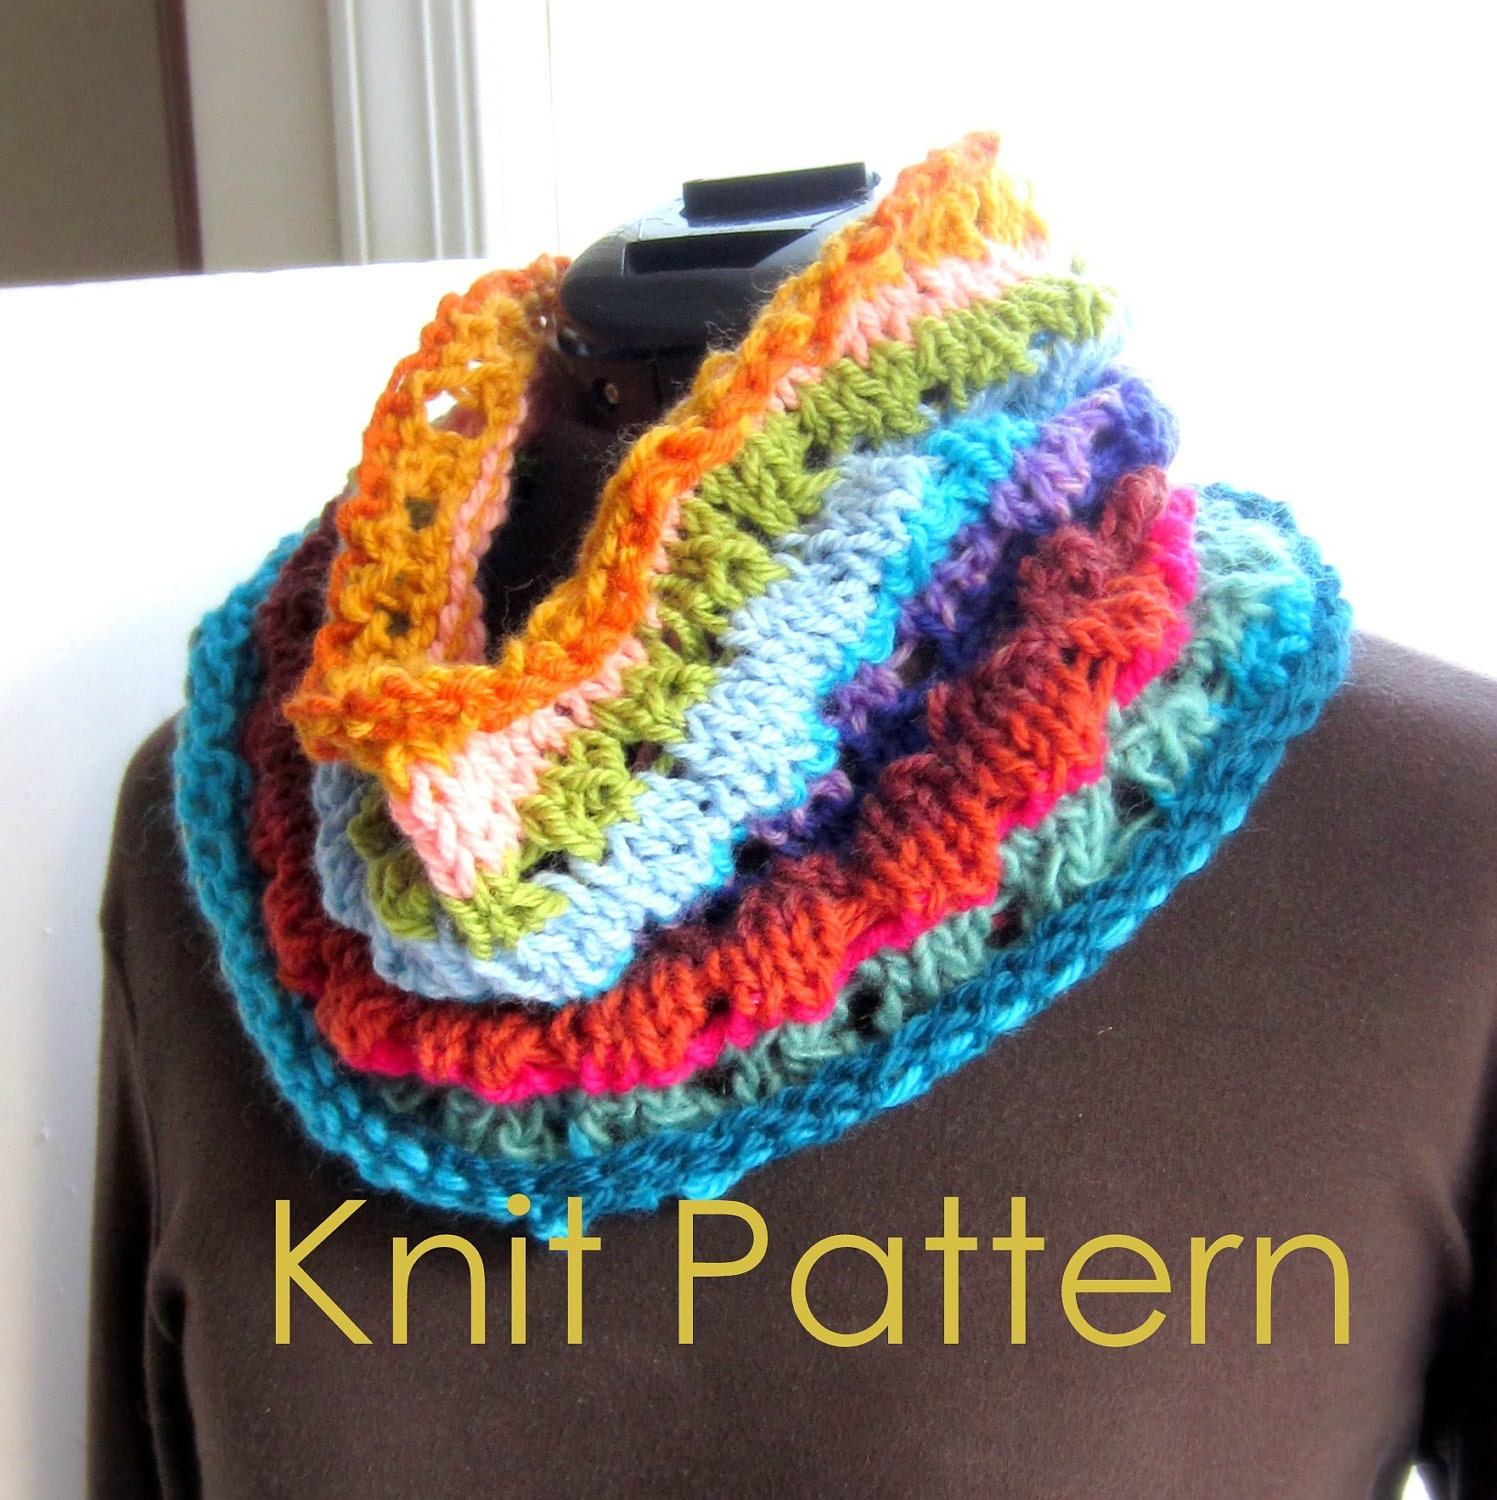 Infinity Scarf Knitting Pattern Size 13 Circular Needles : Infinity Scarf Knitting Pattern Tutorial pdf Easy Knit Scarf